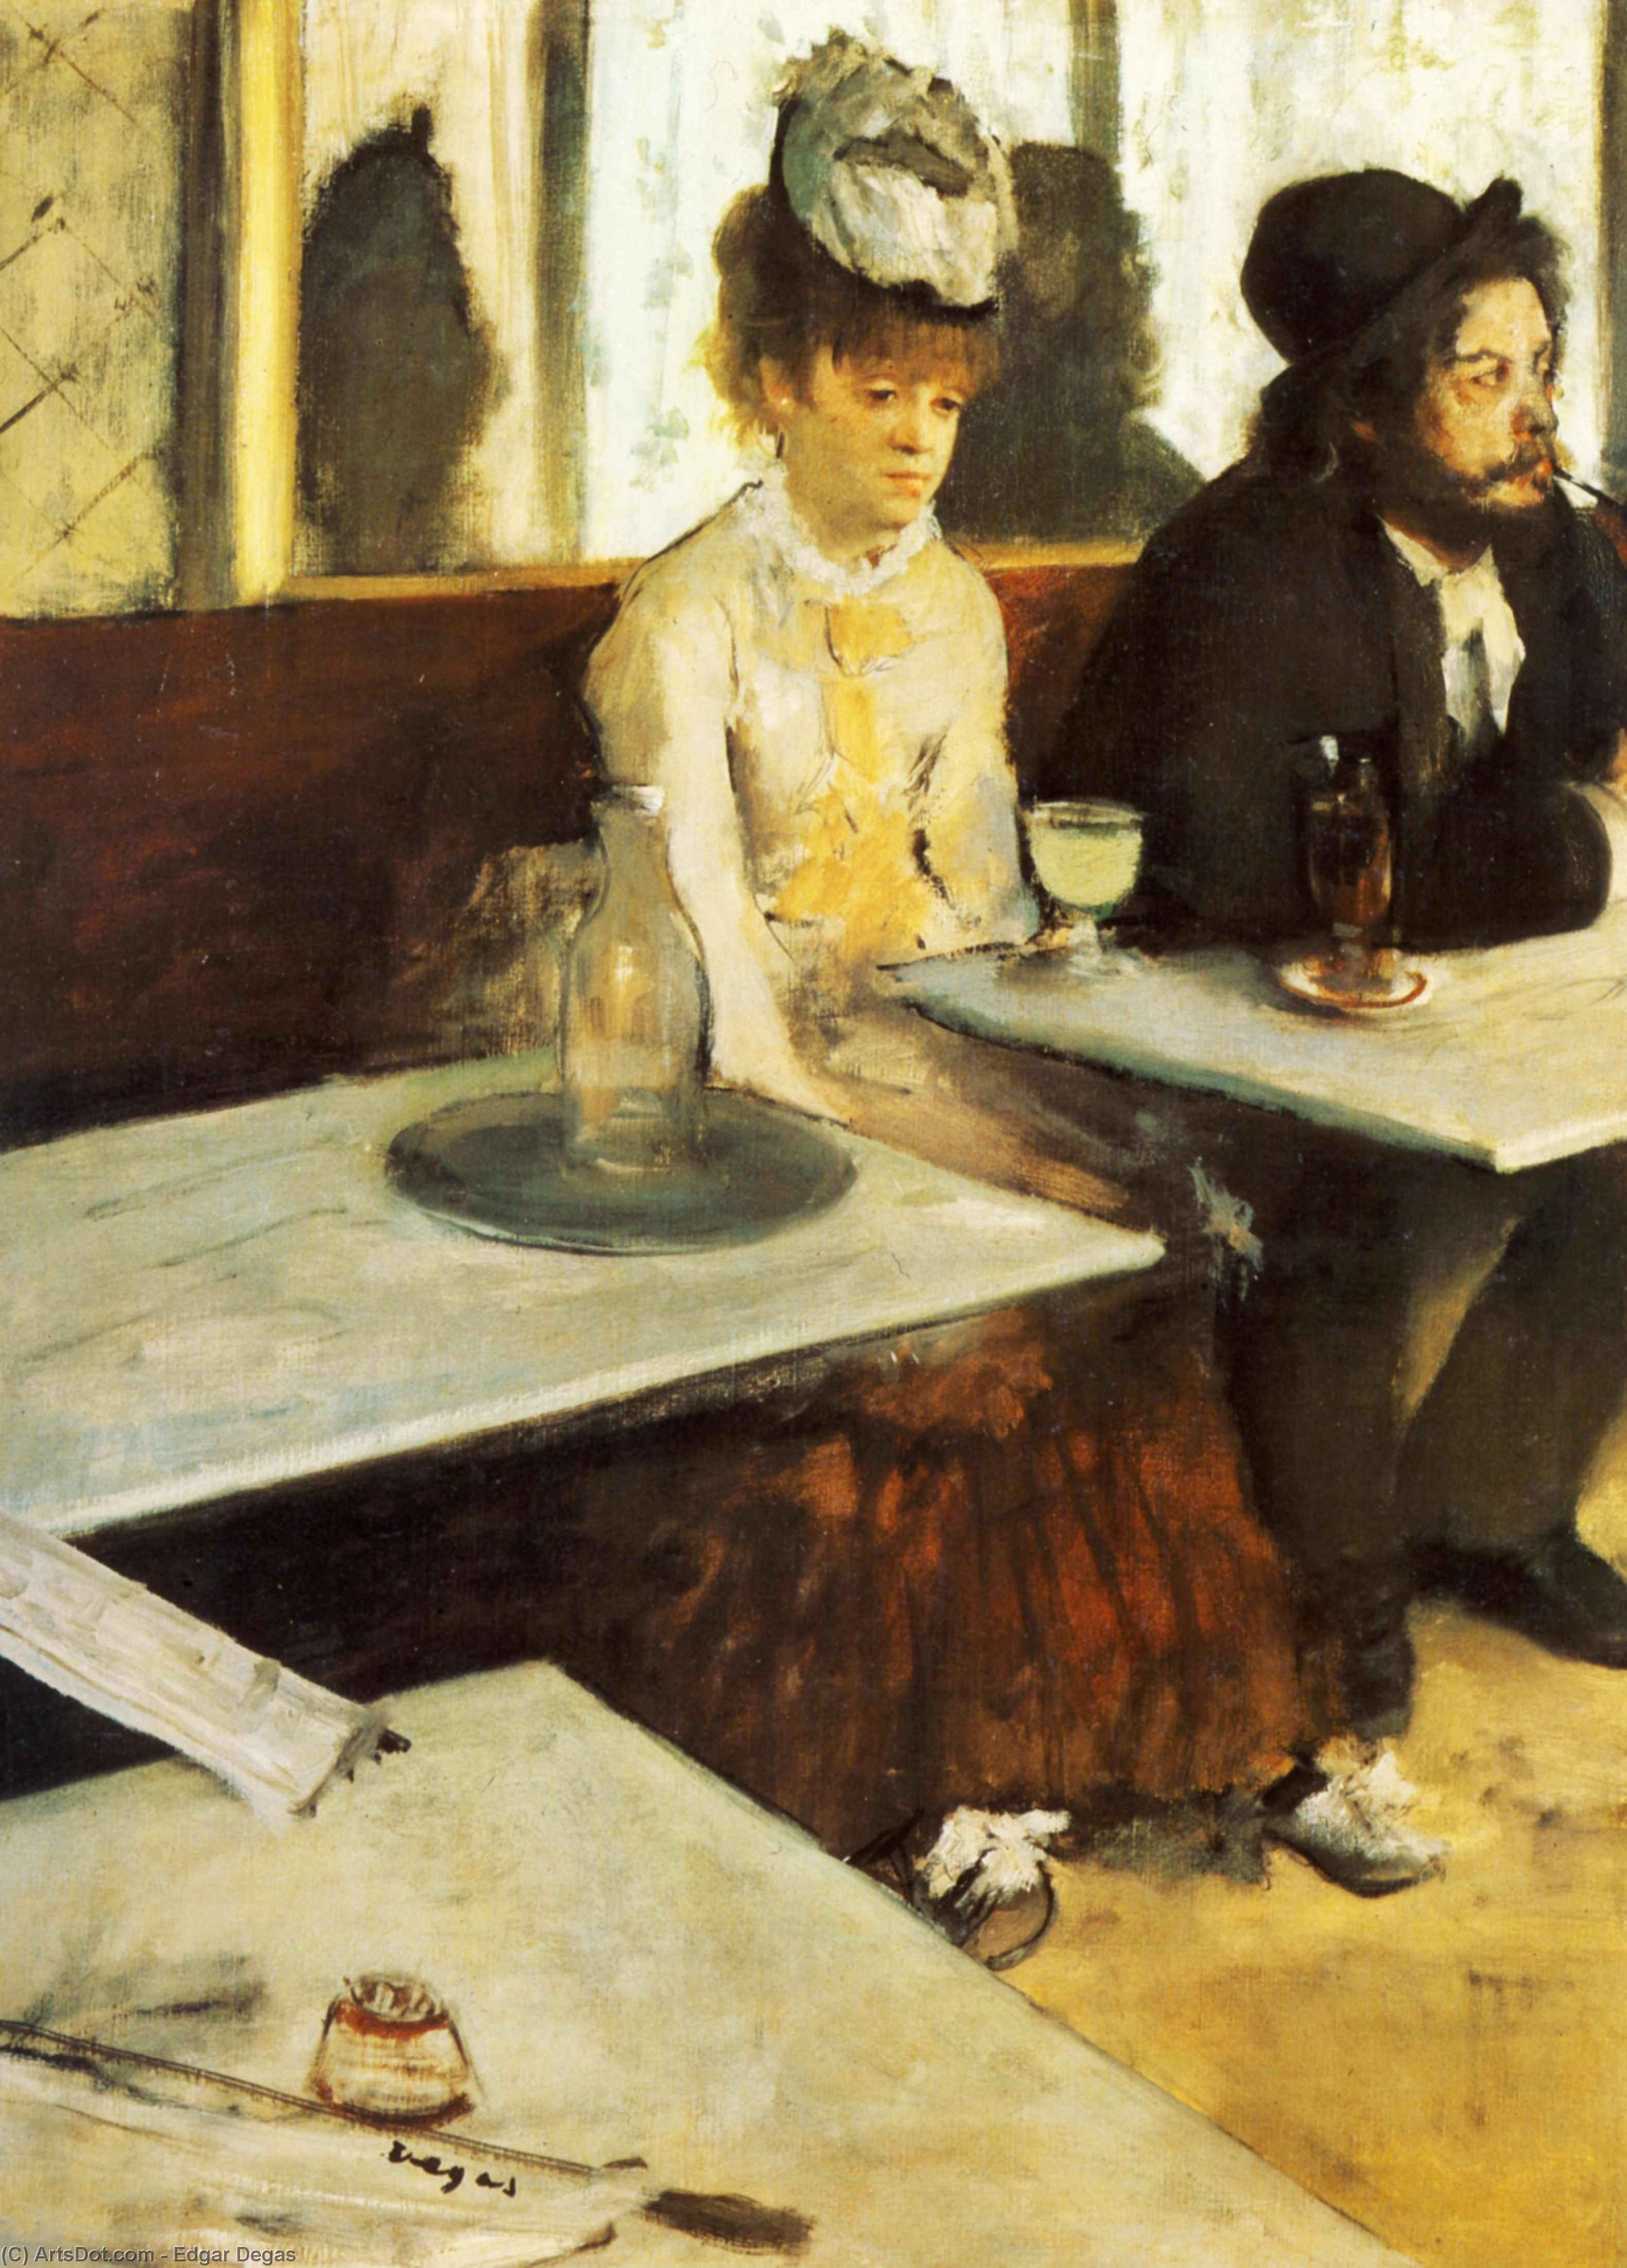 Wikioo.org - The Encyclopedia of Fine Arts - Painting, Artwork by Edgar Degas - The Absinthe Drinker